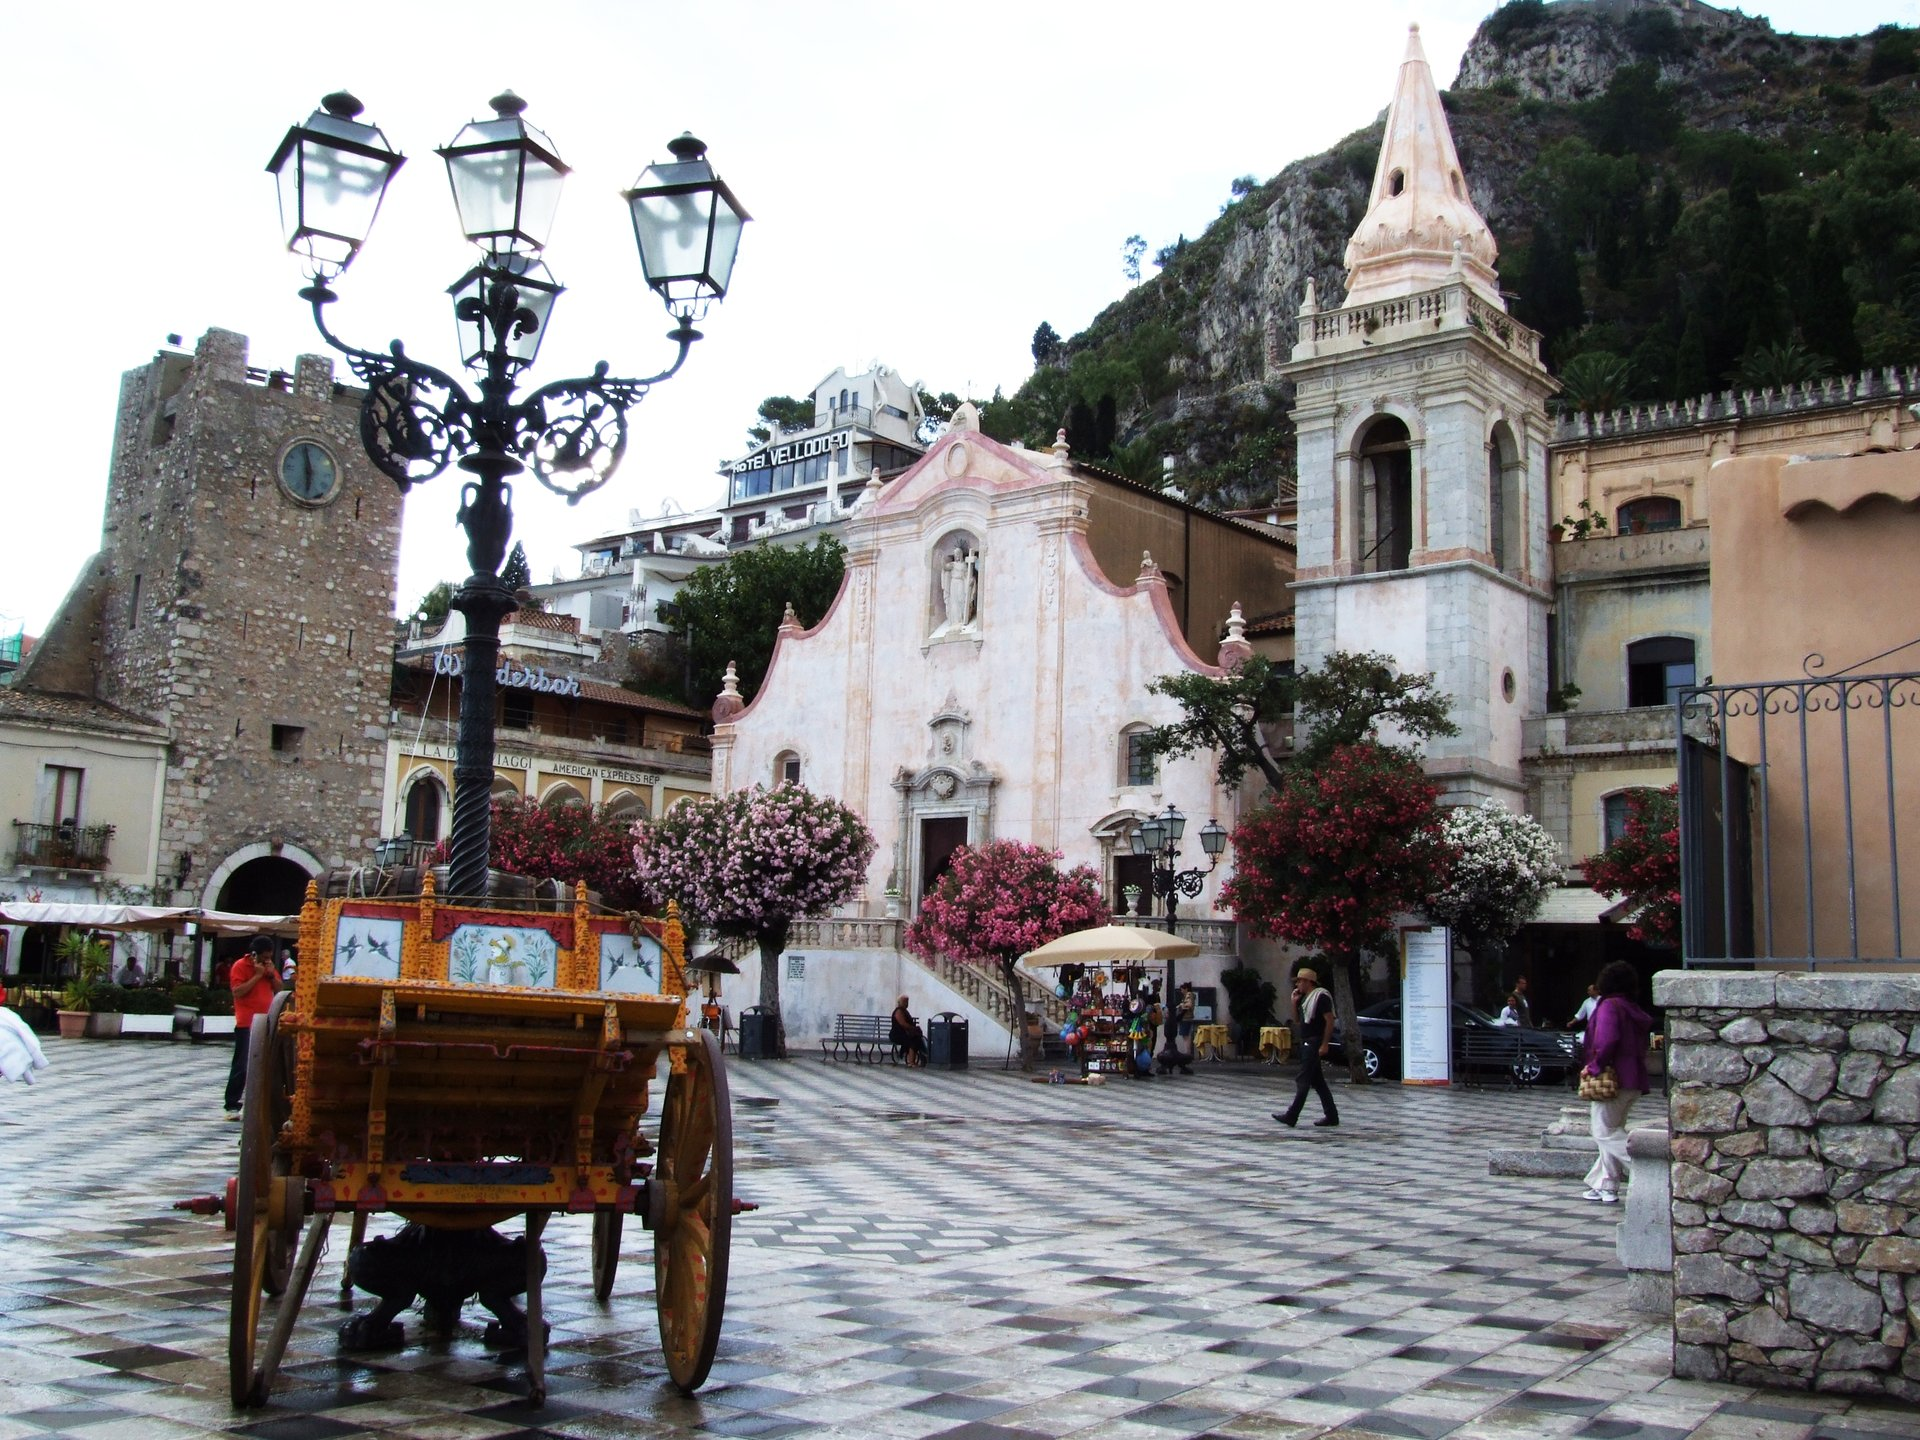 Taormina Italy  city photos : Taormina Sicilia Italy Creative Commons by gnuckx 3667290154 ...